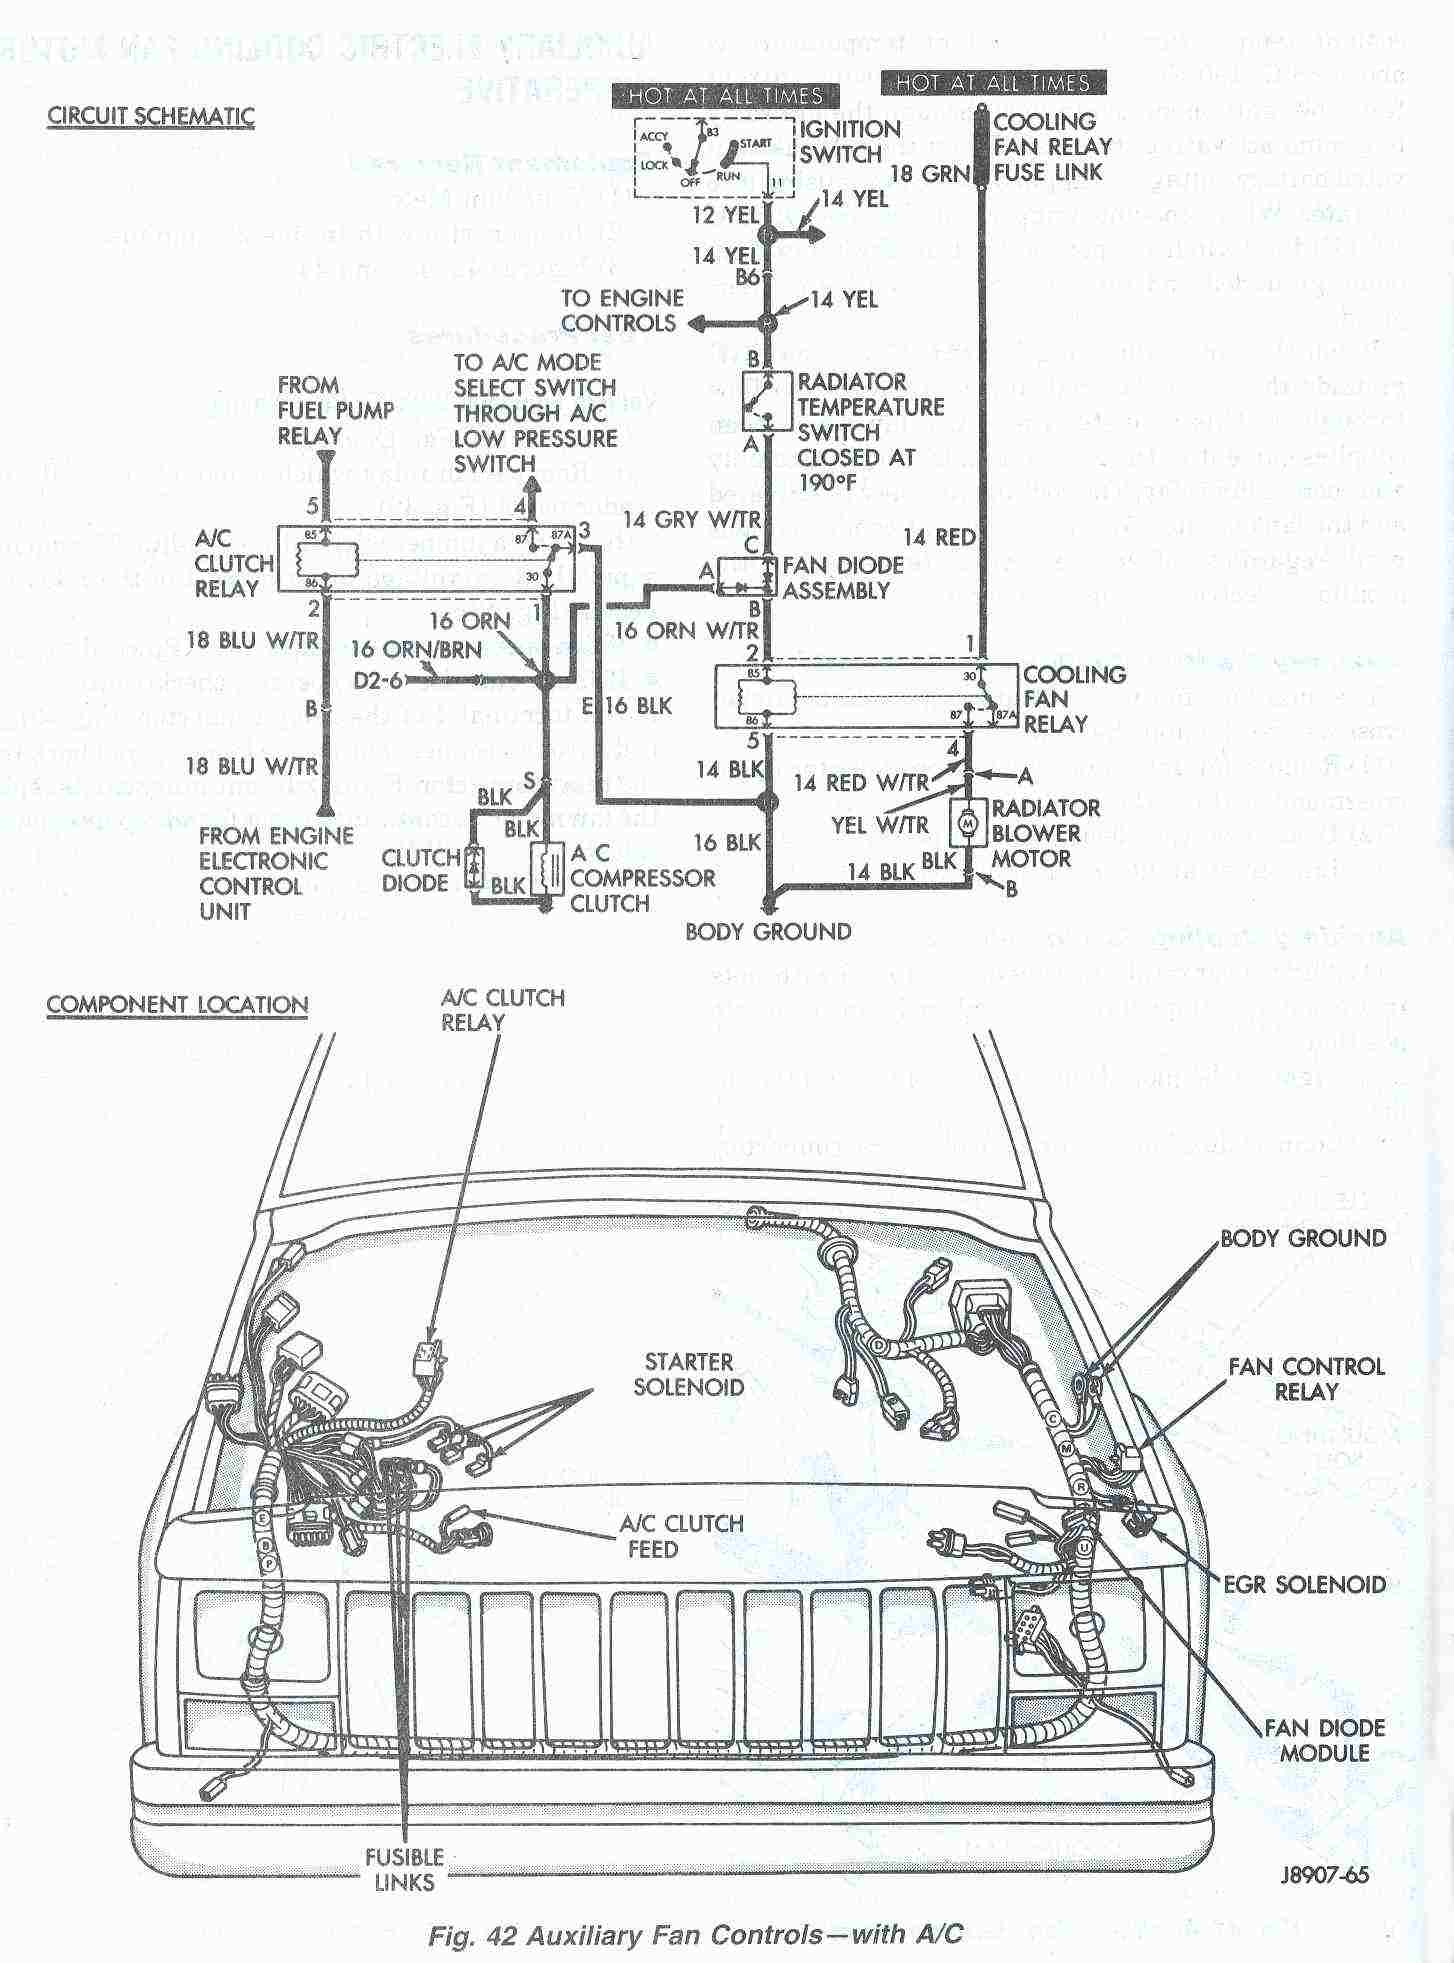 Test Procedures For Vehicle Equipped With Air Conditioning Jeep Cherokee  Cooling System - Electric Cooling Fan Troubleshooting .